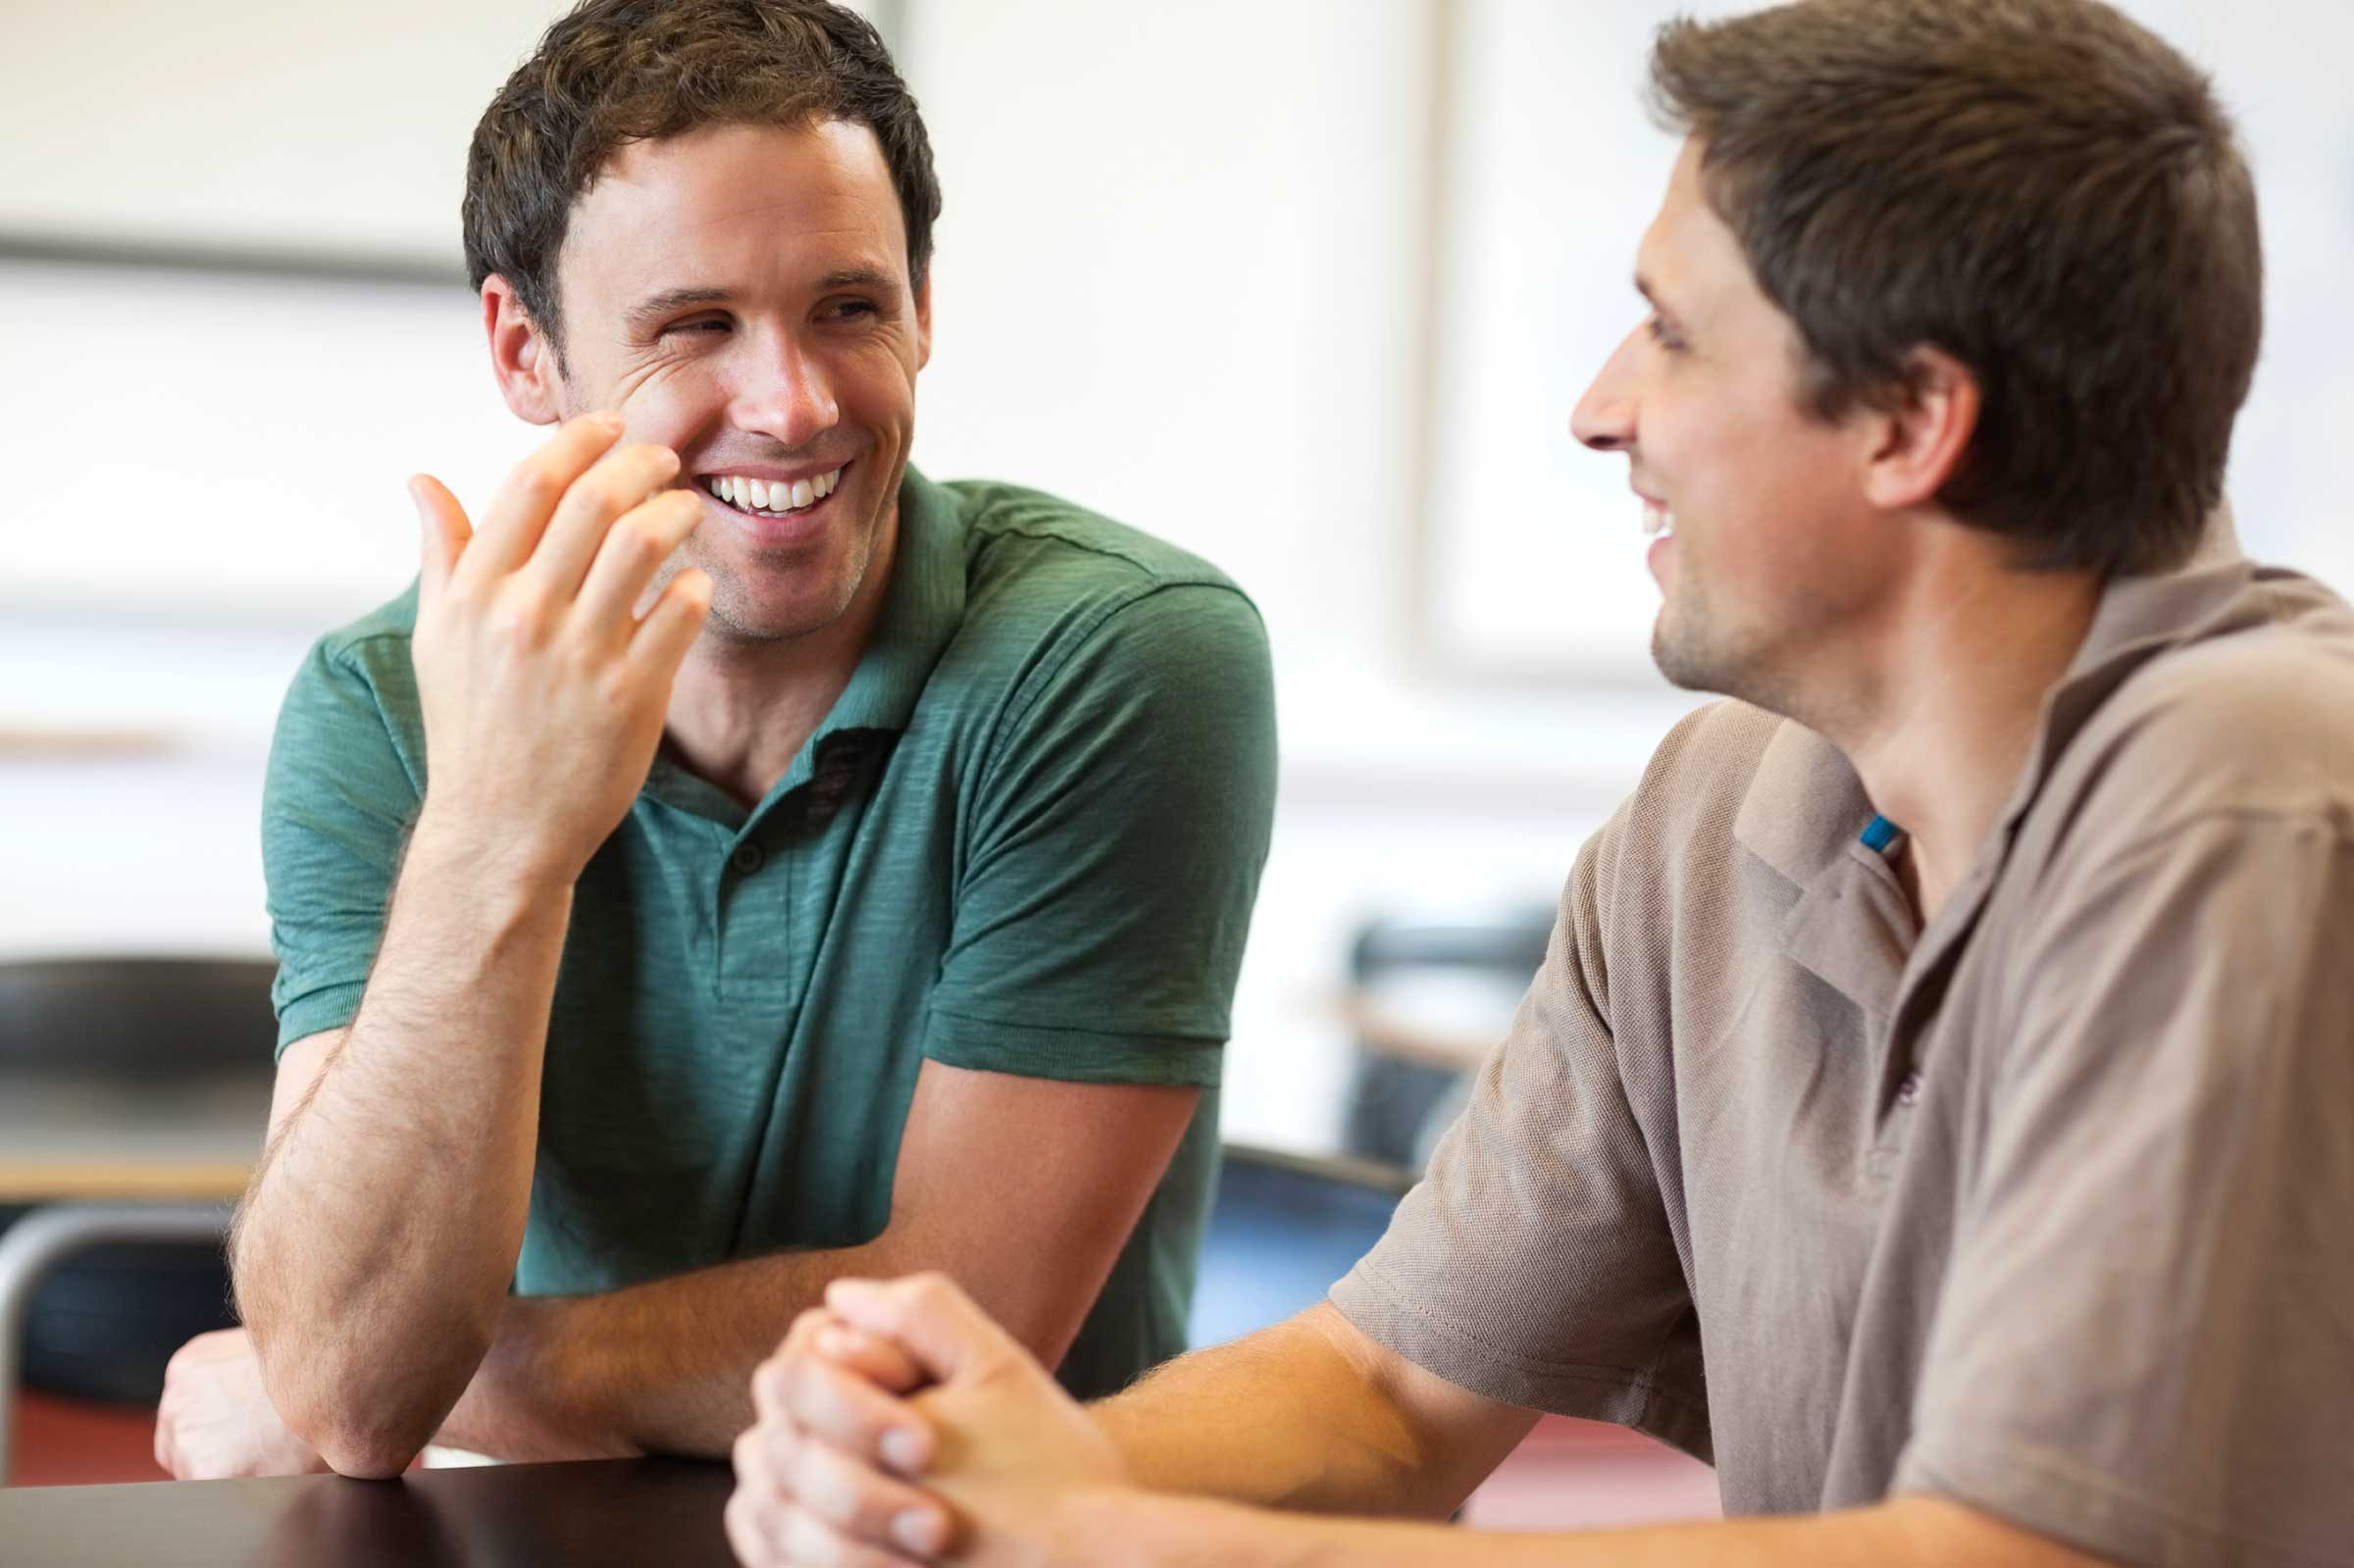 How To Listen 9 Listening Skills To Have